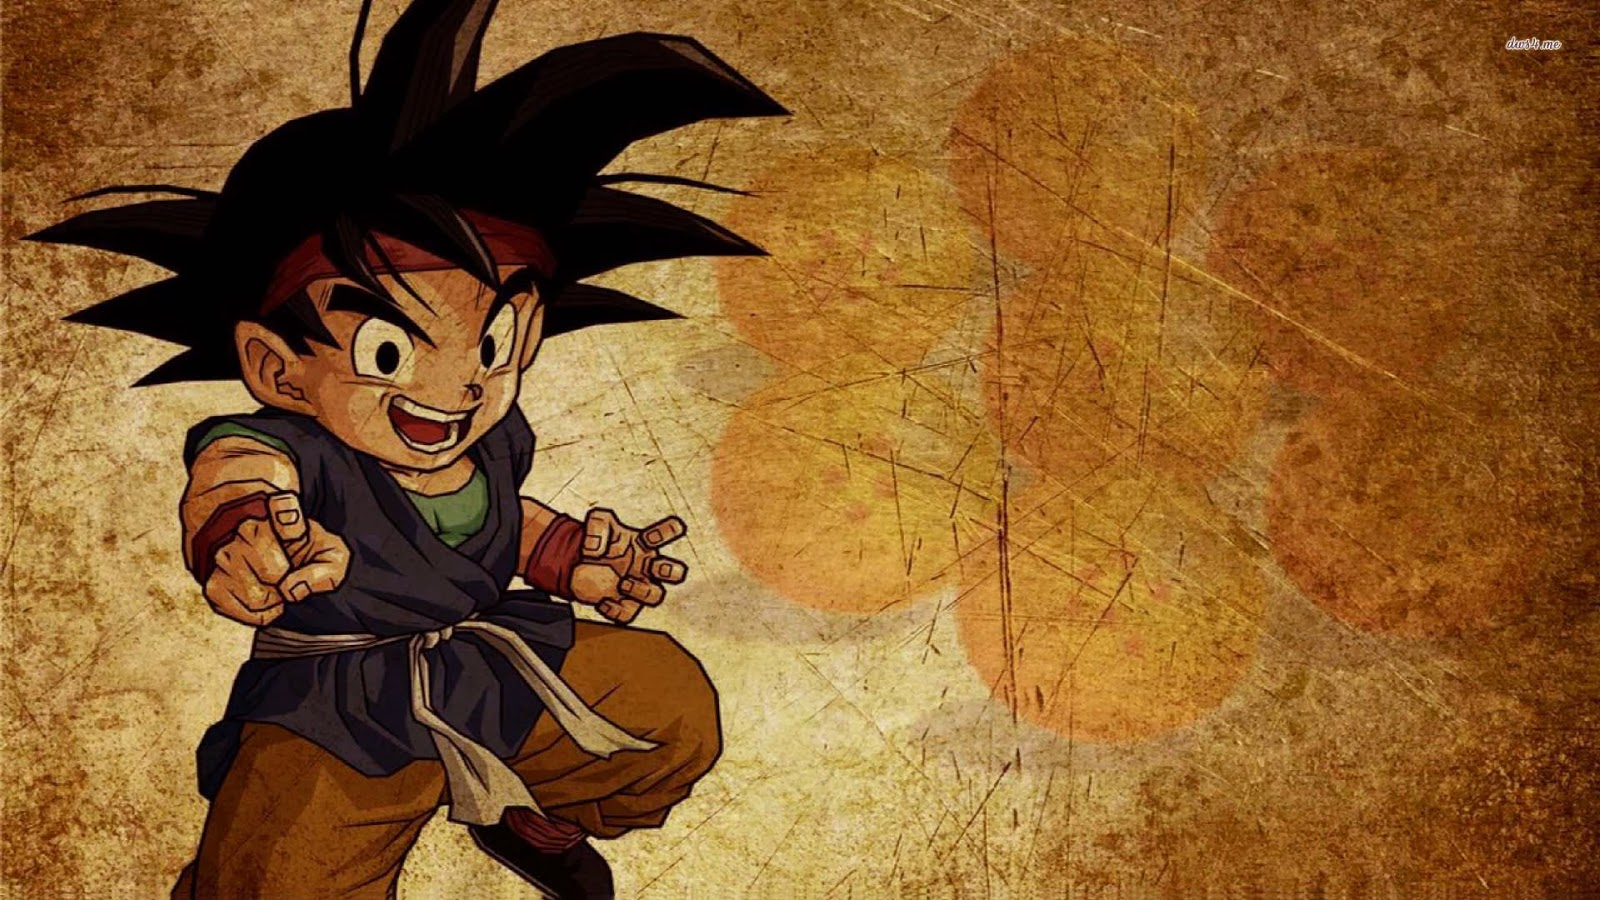 Dragon Ball z HD Wallpaper HD Wallpaper 1600x900